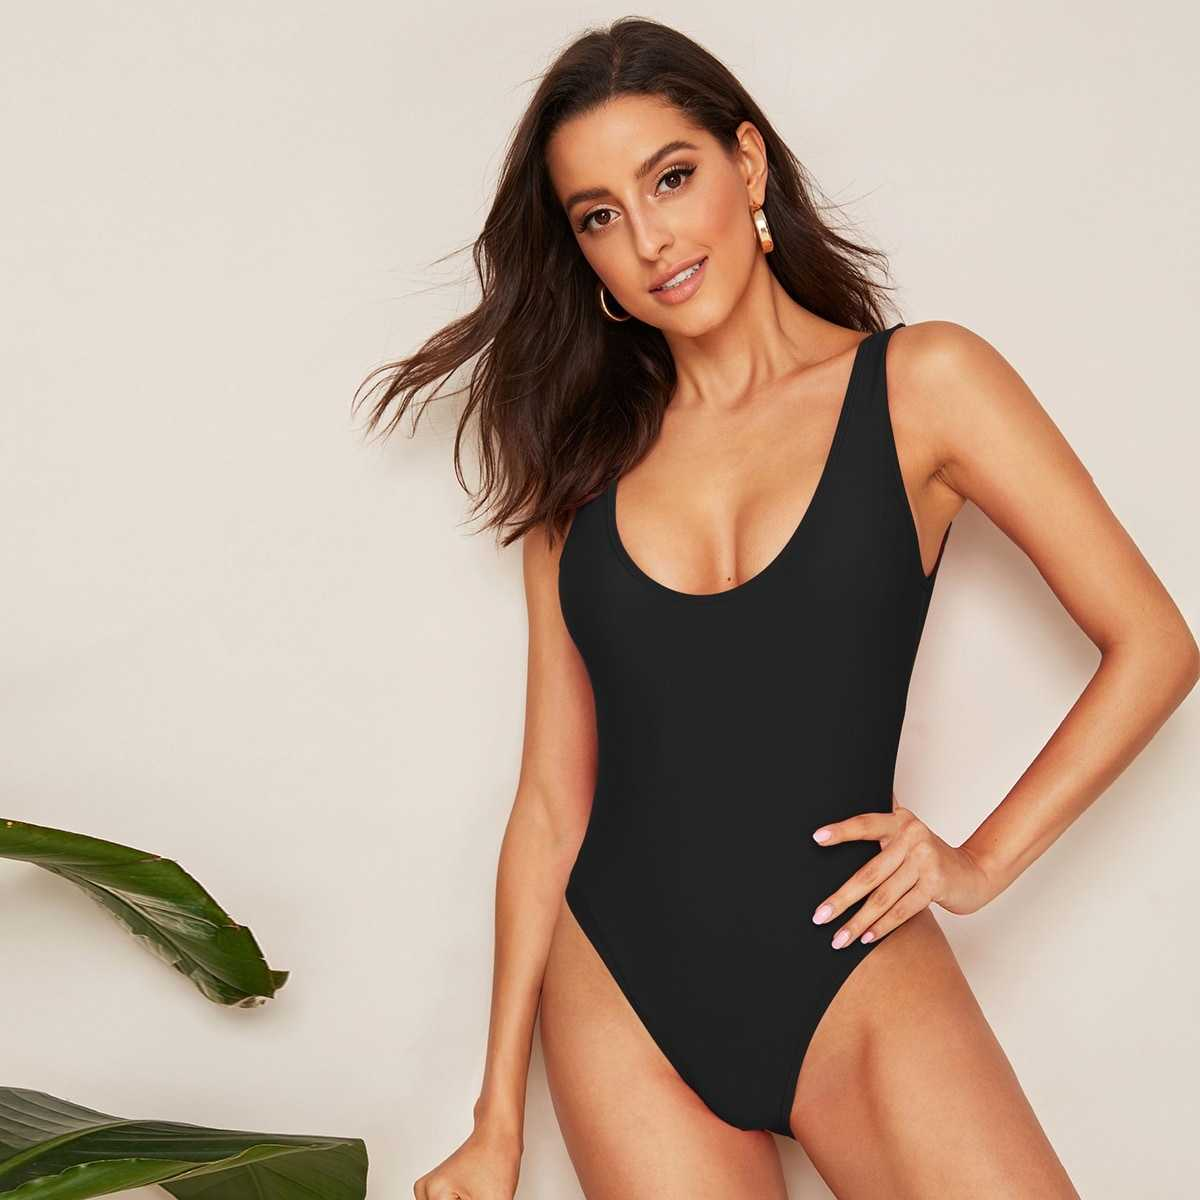 Low Back Solid One Piece Swimsuit in Black by ROMWE on GOOFASH